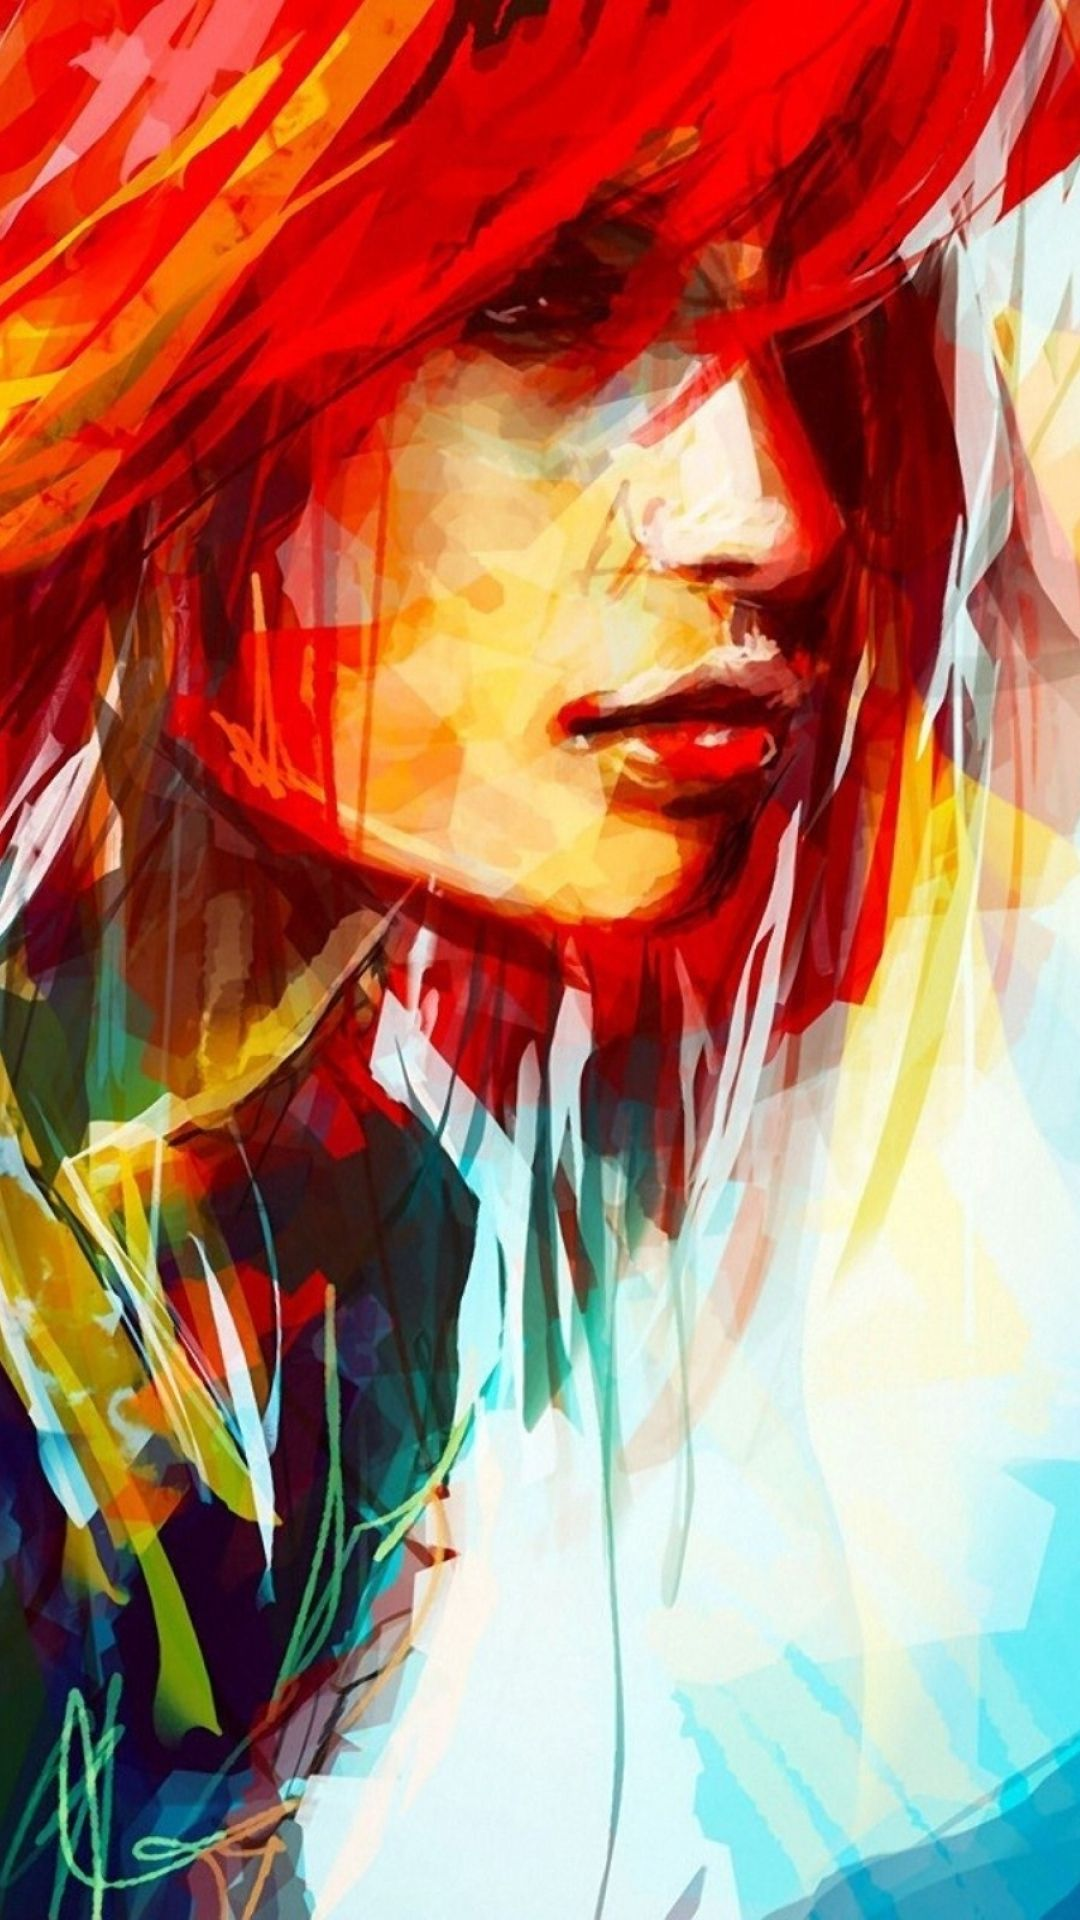 1080x1920 HD Wallpaper Portrait WallpaperSafari Искусство